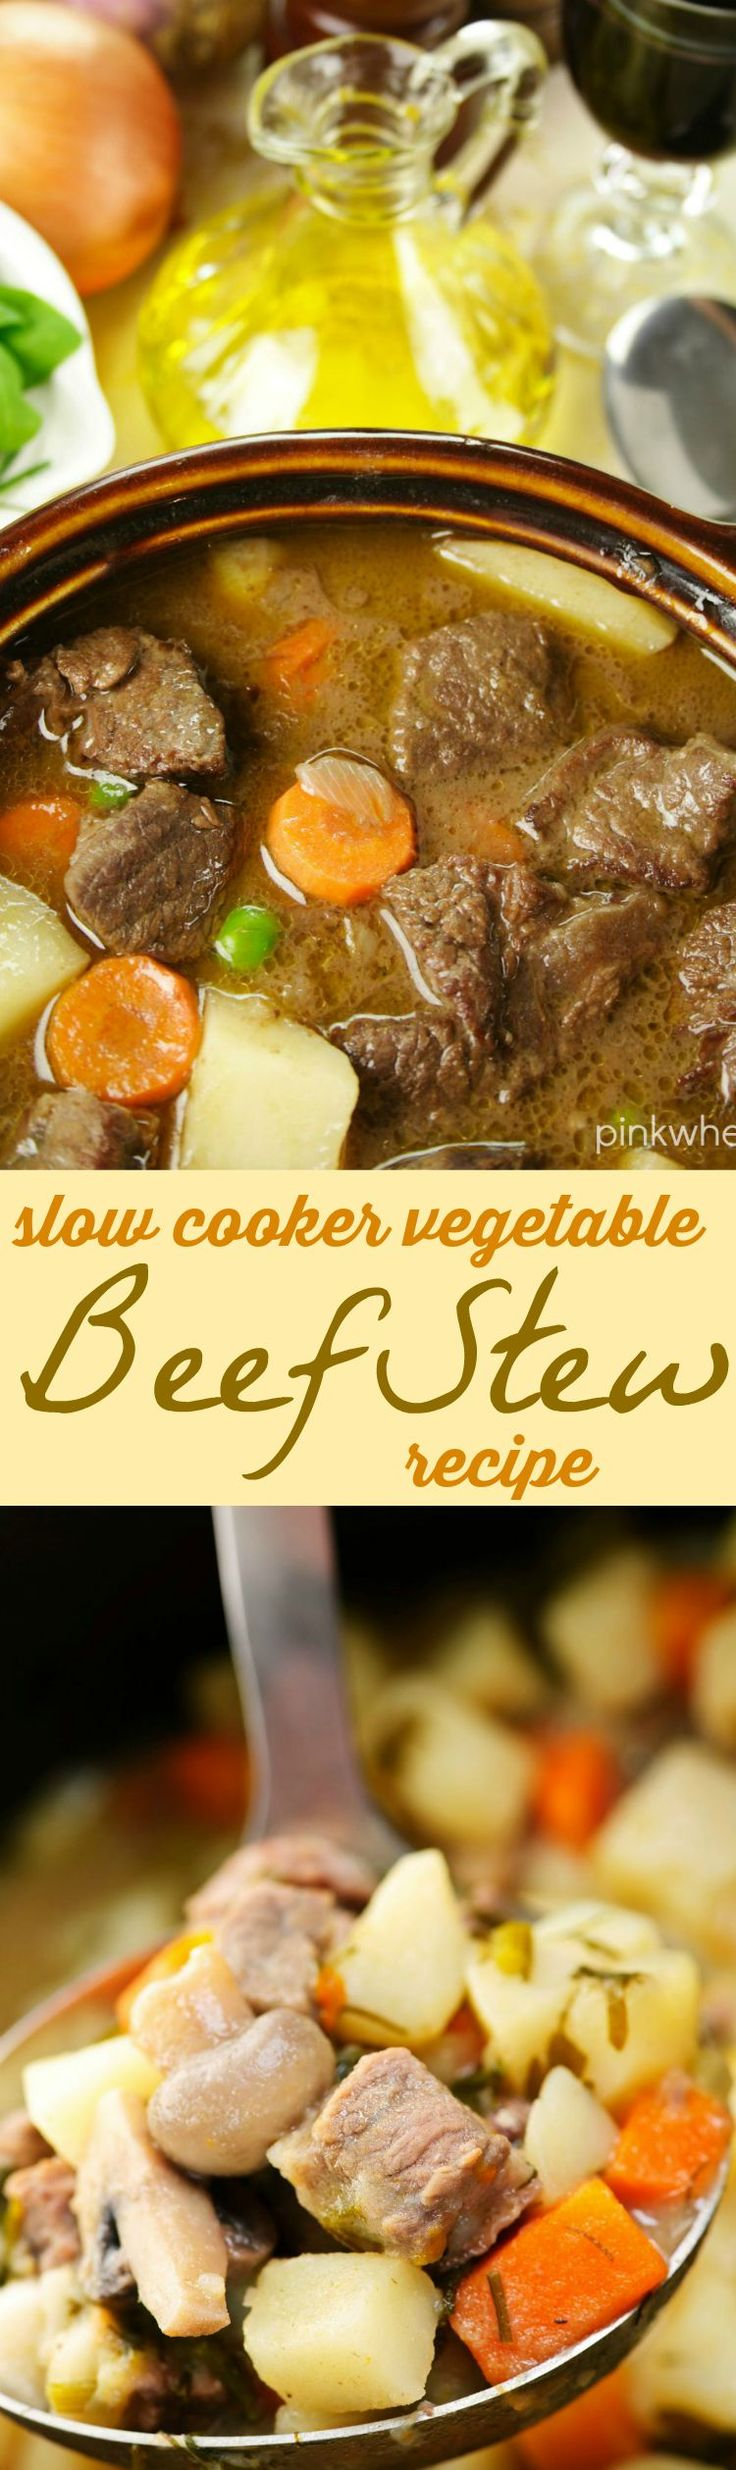 One of my favorite recipes, this Slow Cooker Vegetable Beef Stew is a delicious and hearty Winter Soup.